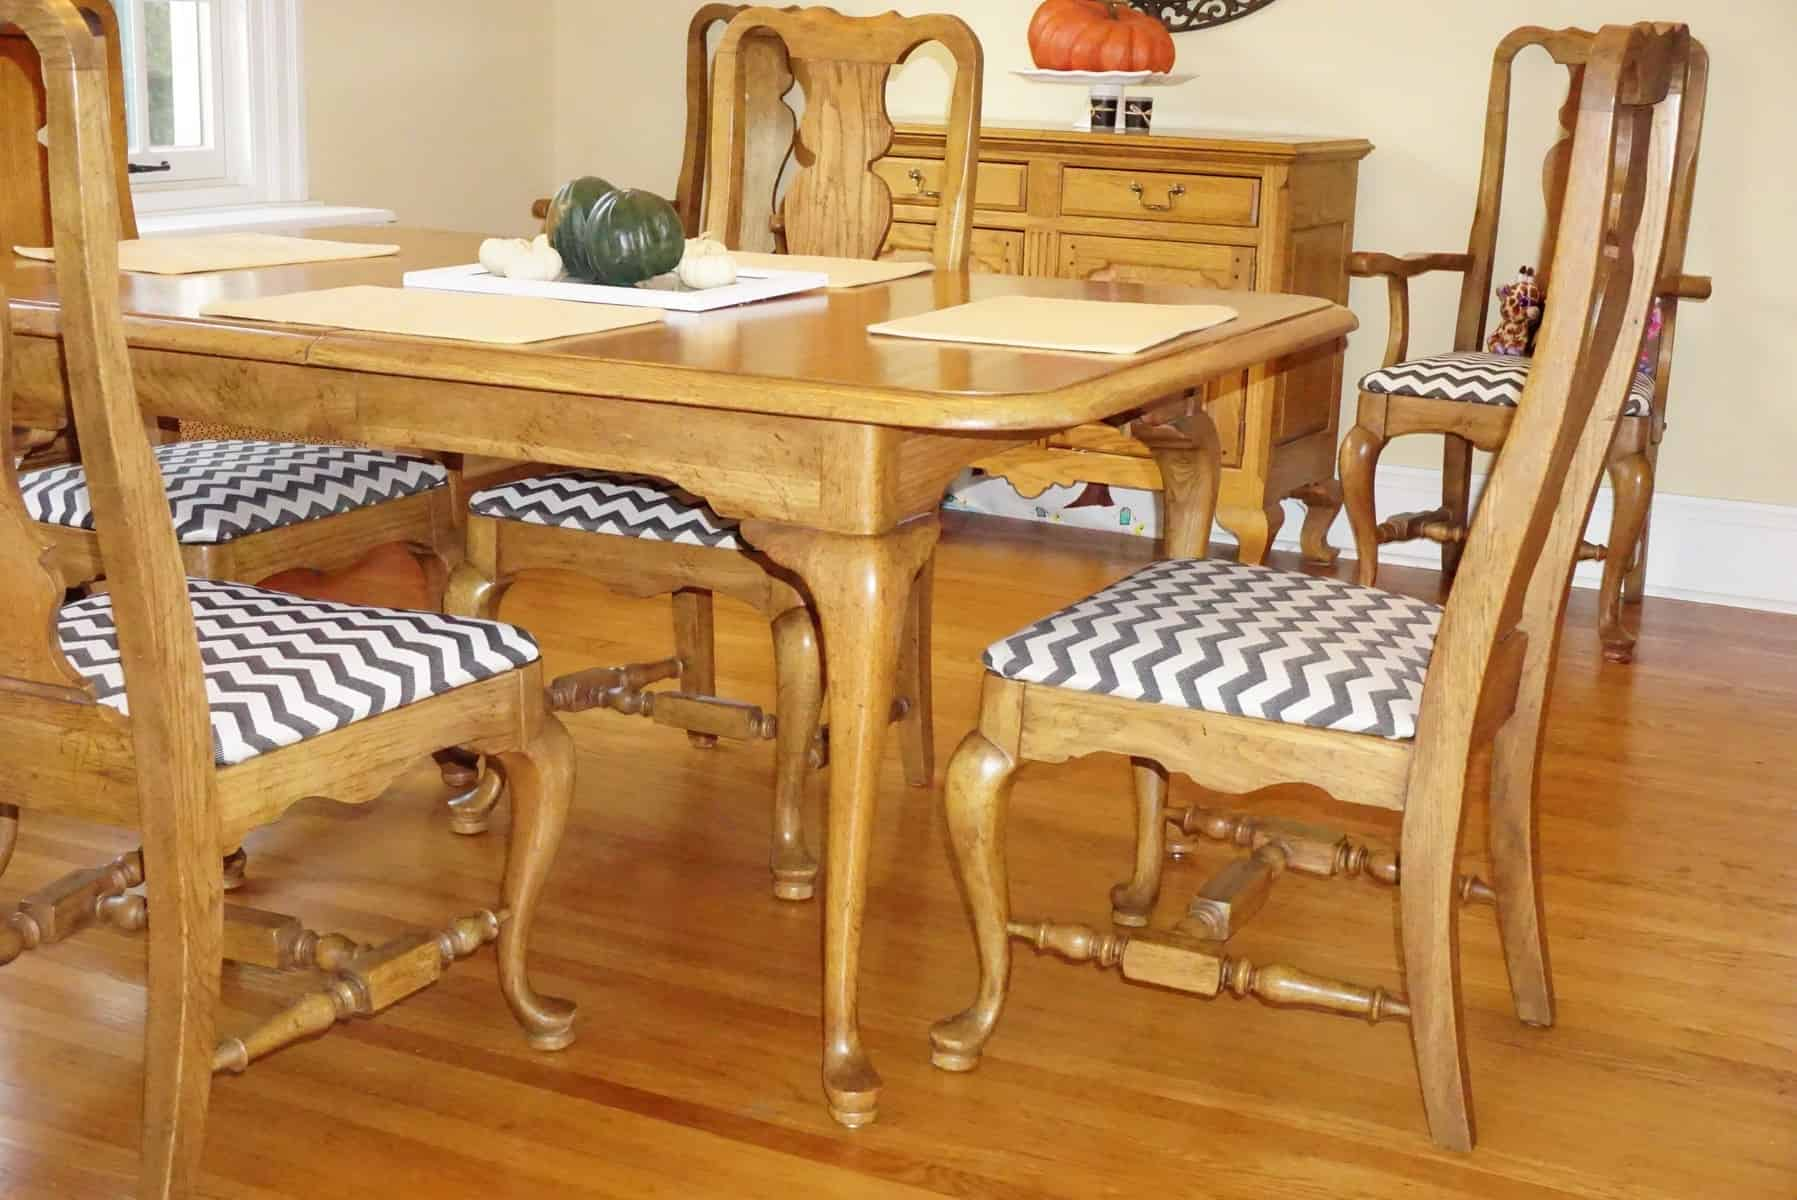 How To Reupholster Dining Room Chair Seat Covers Sitting Pretty